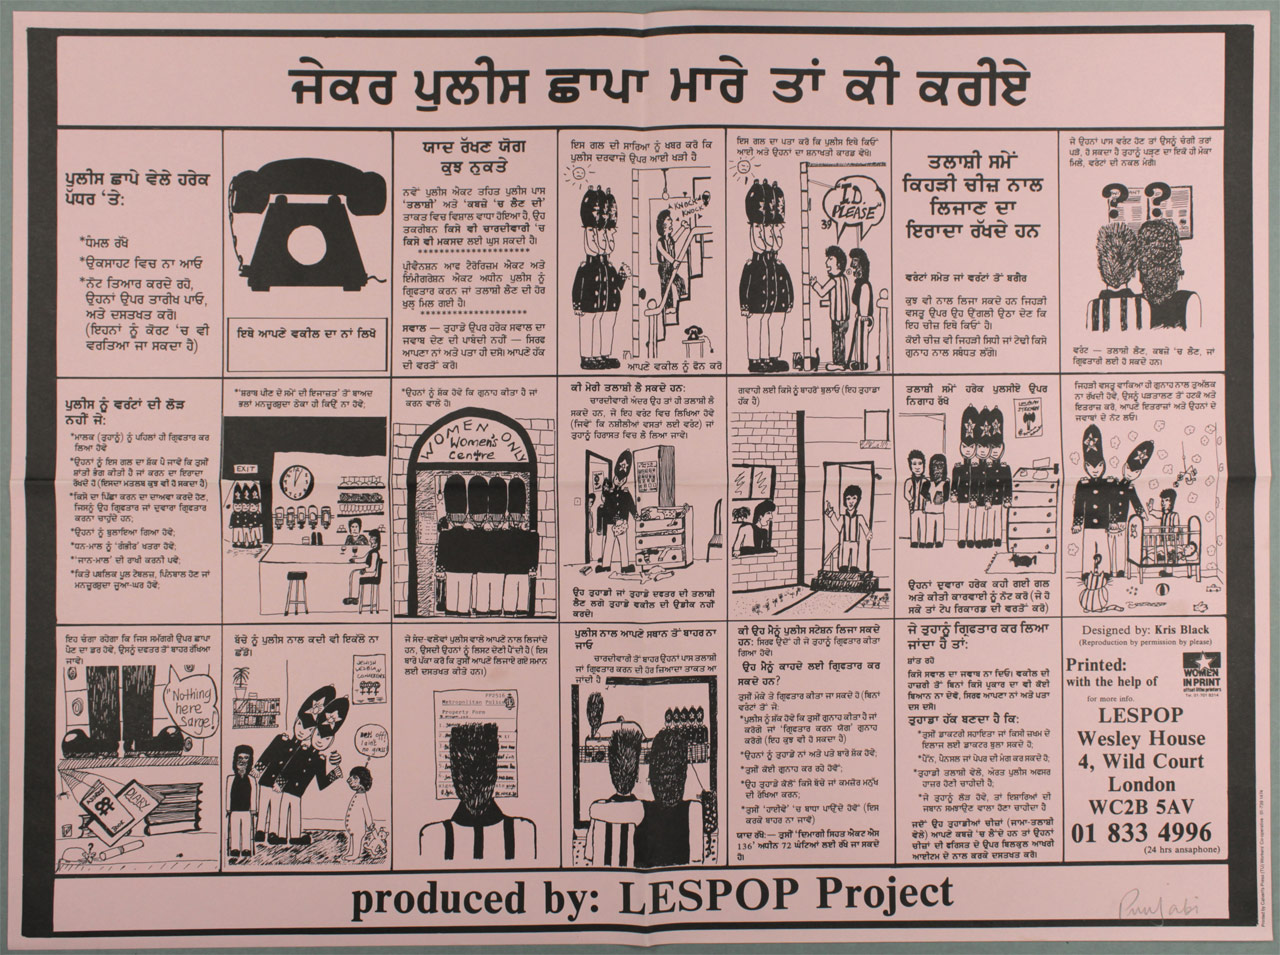 What to do if the police raid (Punjabi version), LESPOP, Lesbians and Policing Project poster, designed by Kris Black, c. 1985